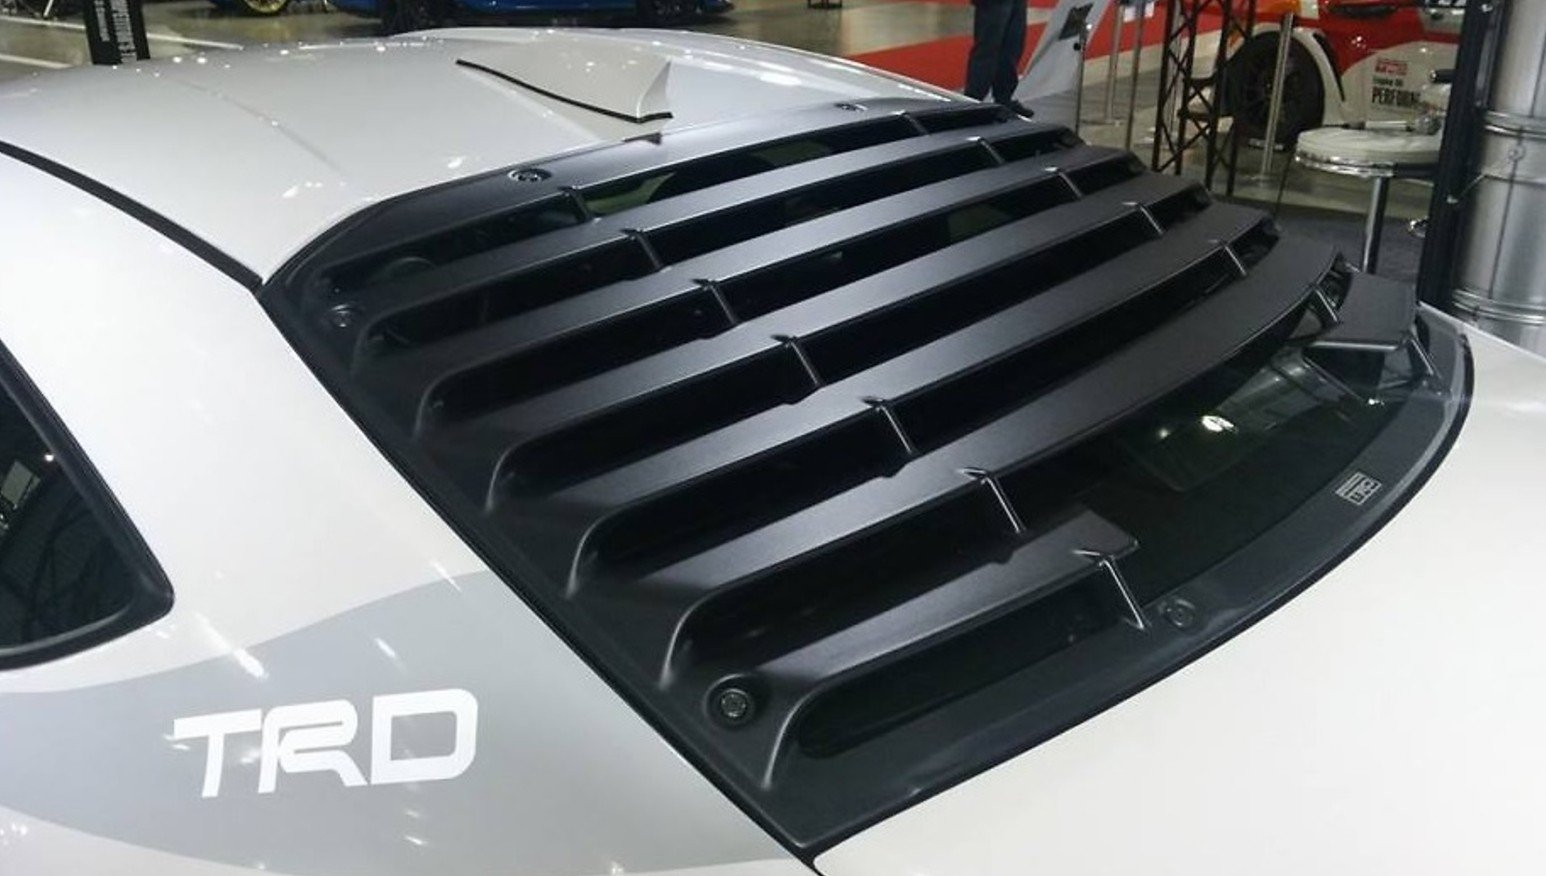 TRD Louver now at our lowest price ever!